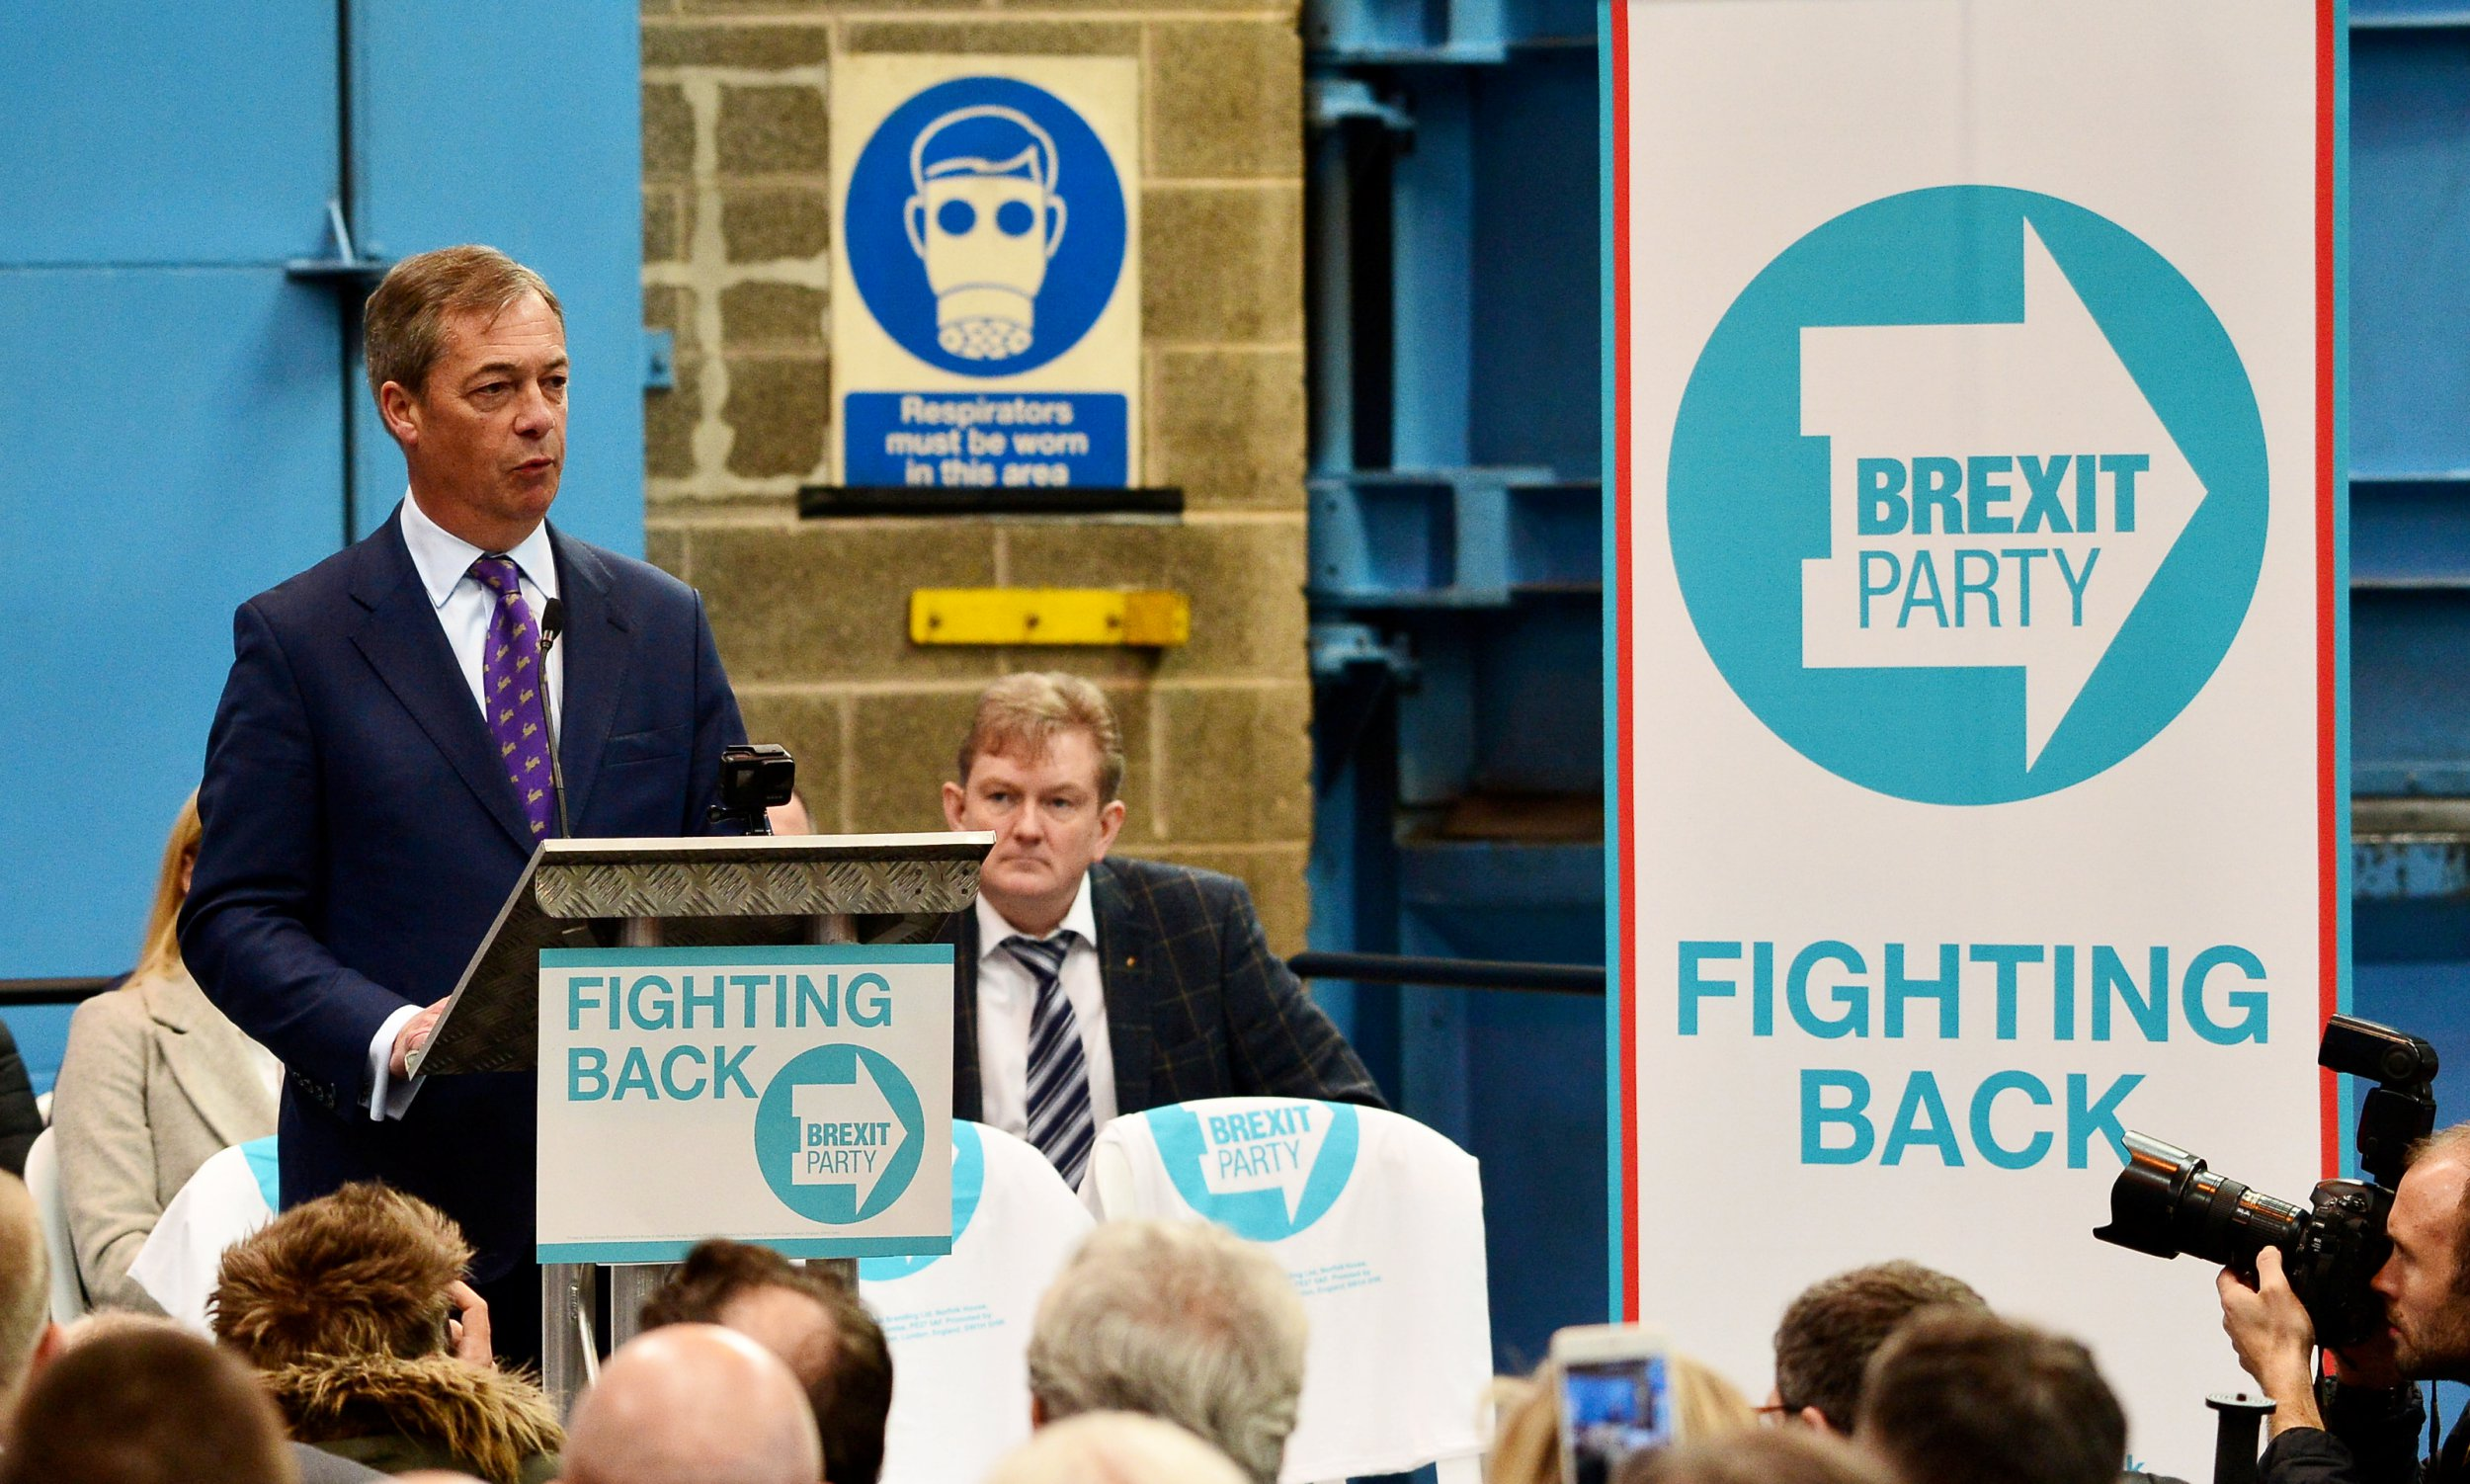 Nigel Farage officially launches his new political party at JBG Penny and Co in Coventry. April 12, 2019. See SWNS story SWMDbrexit. The former parliamentary candidate and Member of the European Parliament (MEP) left UKIP in December 2018 after 25 years, and helped form the Brexit Party. Founded in January 2019, party chiefs have revealed that they plan to contest every region in the upcoming elections on May 23.